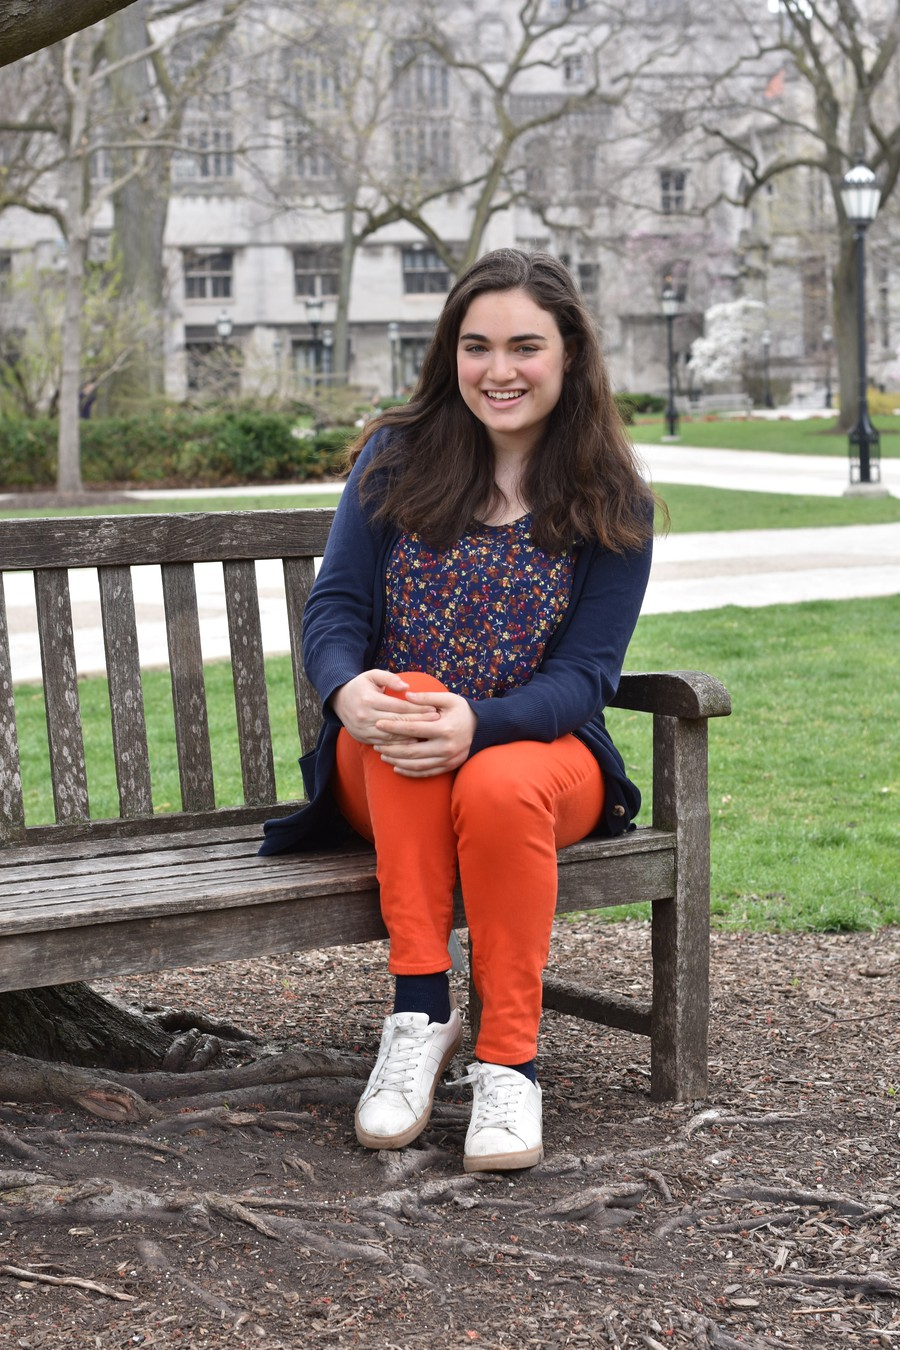 Third-year Rachel Abrams is running for Community and Government Liaison in the Spring 2019 SG elections.